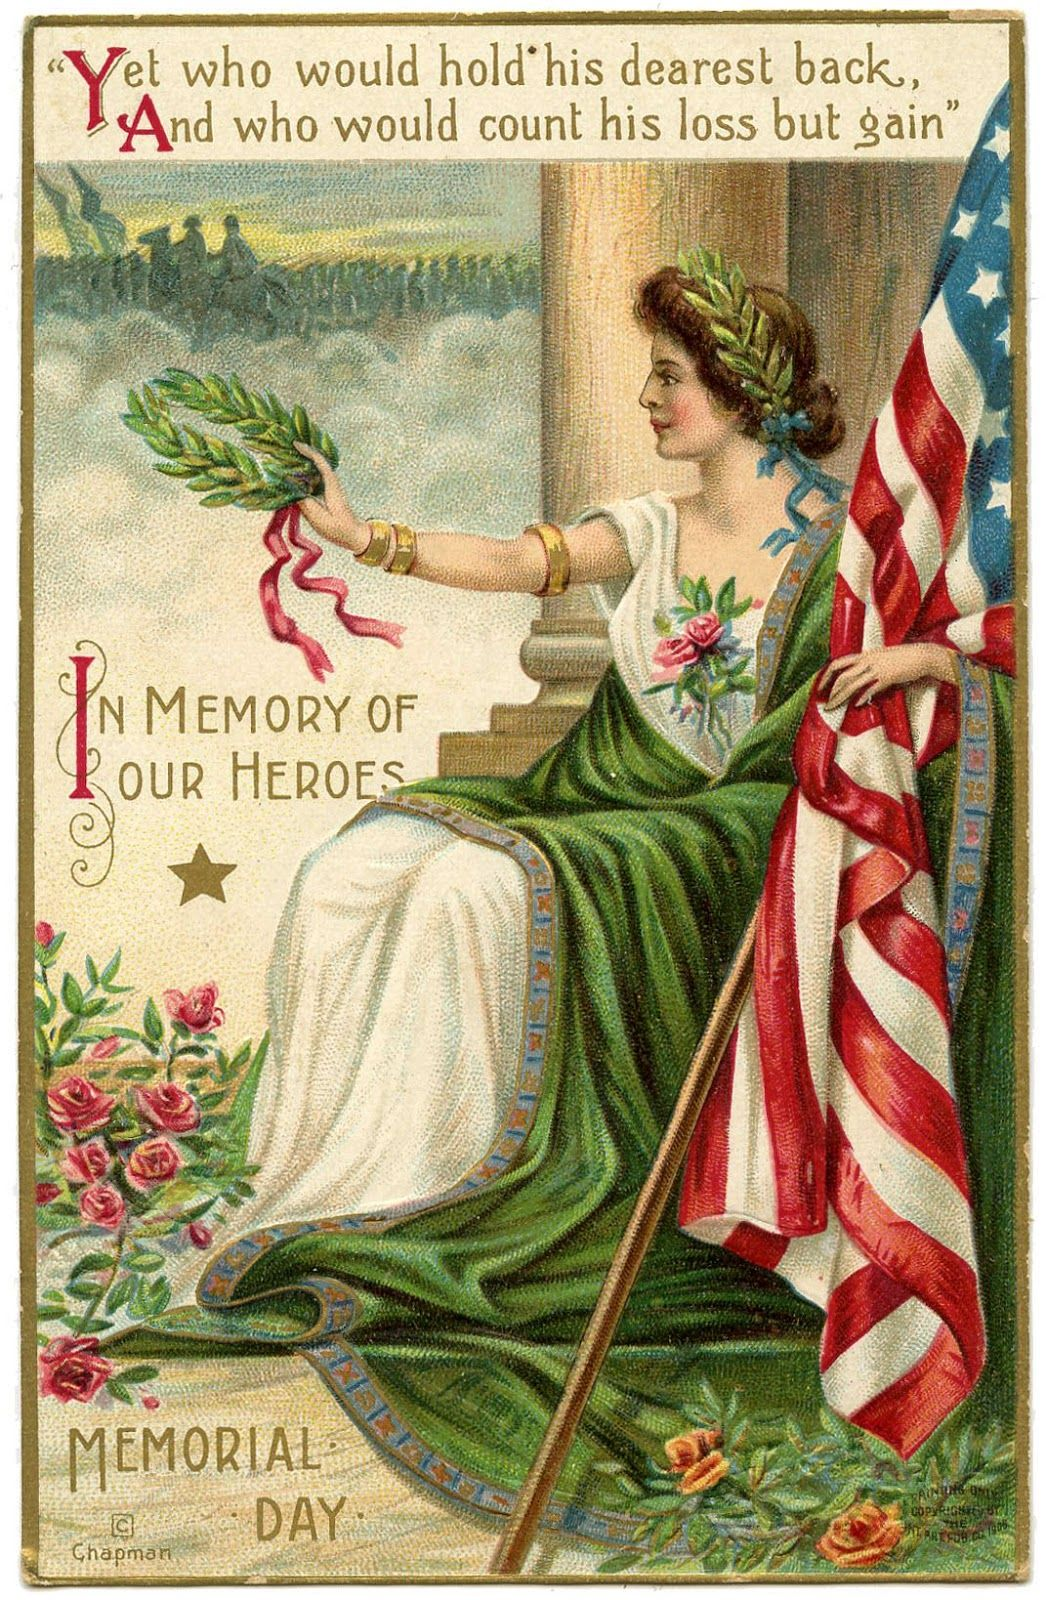 Memorial Day postcard - date unknown